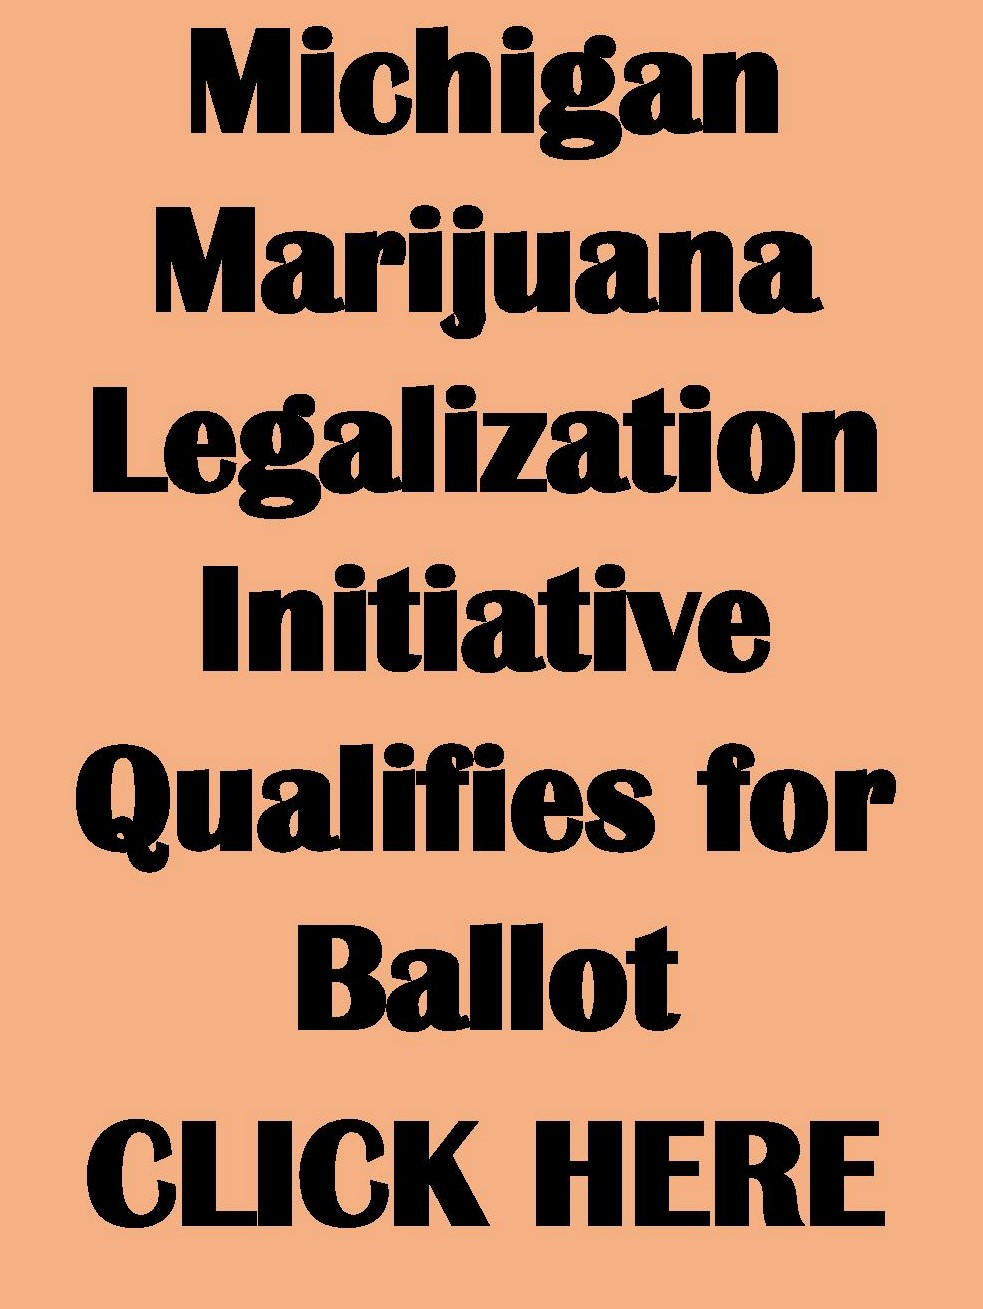 Michigan_Marijuana_Legalization_Initiative2.jpg